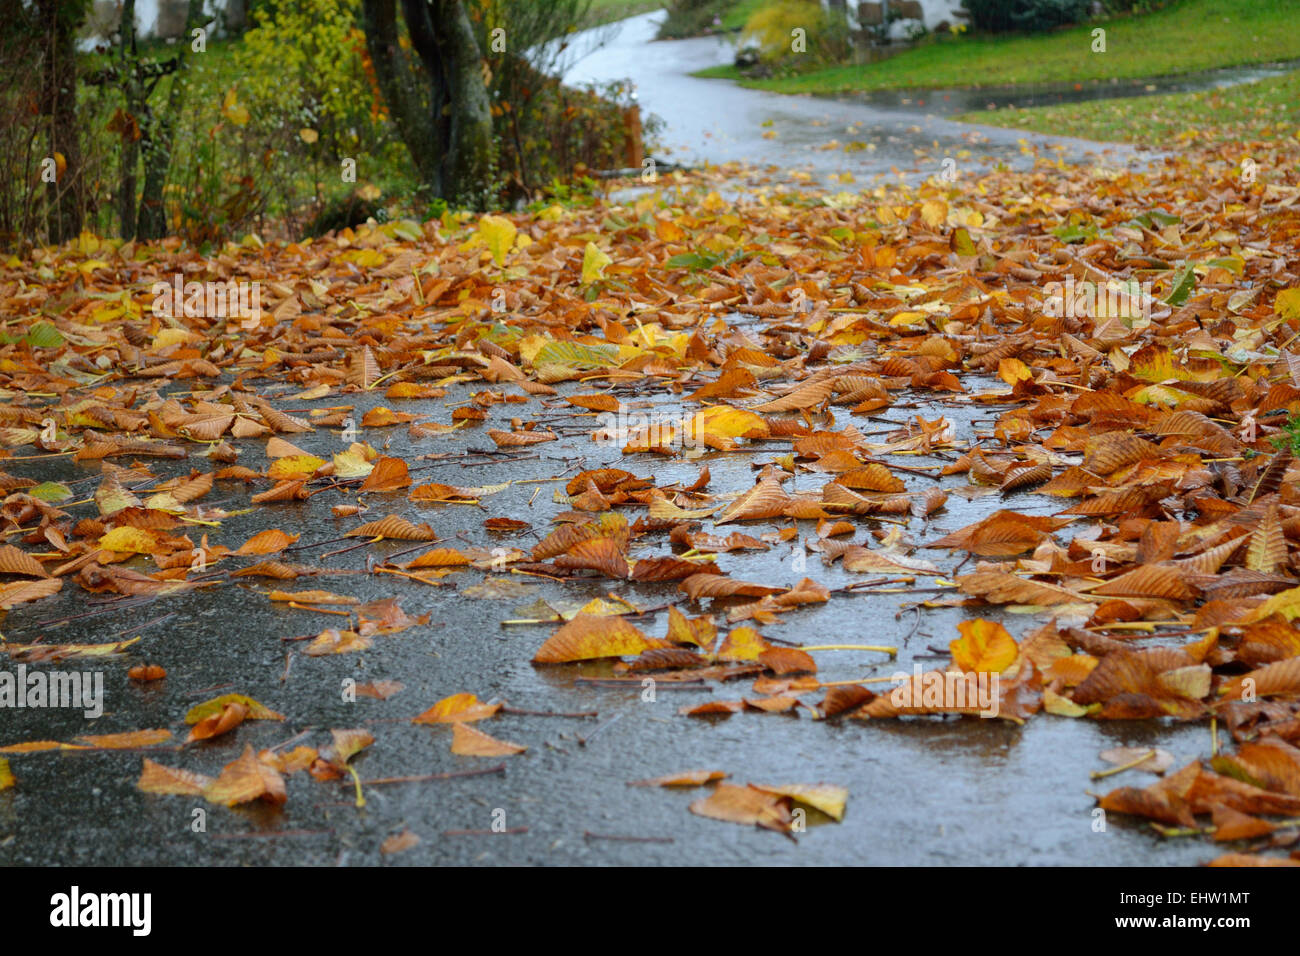 Danger of slipping on leaves on the road - Stock Image